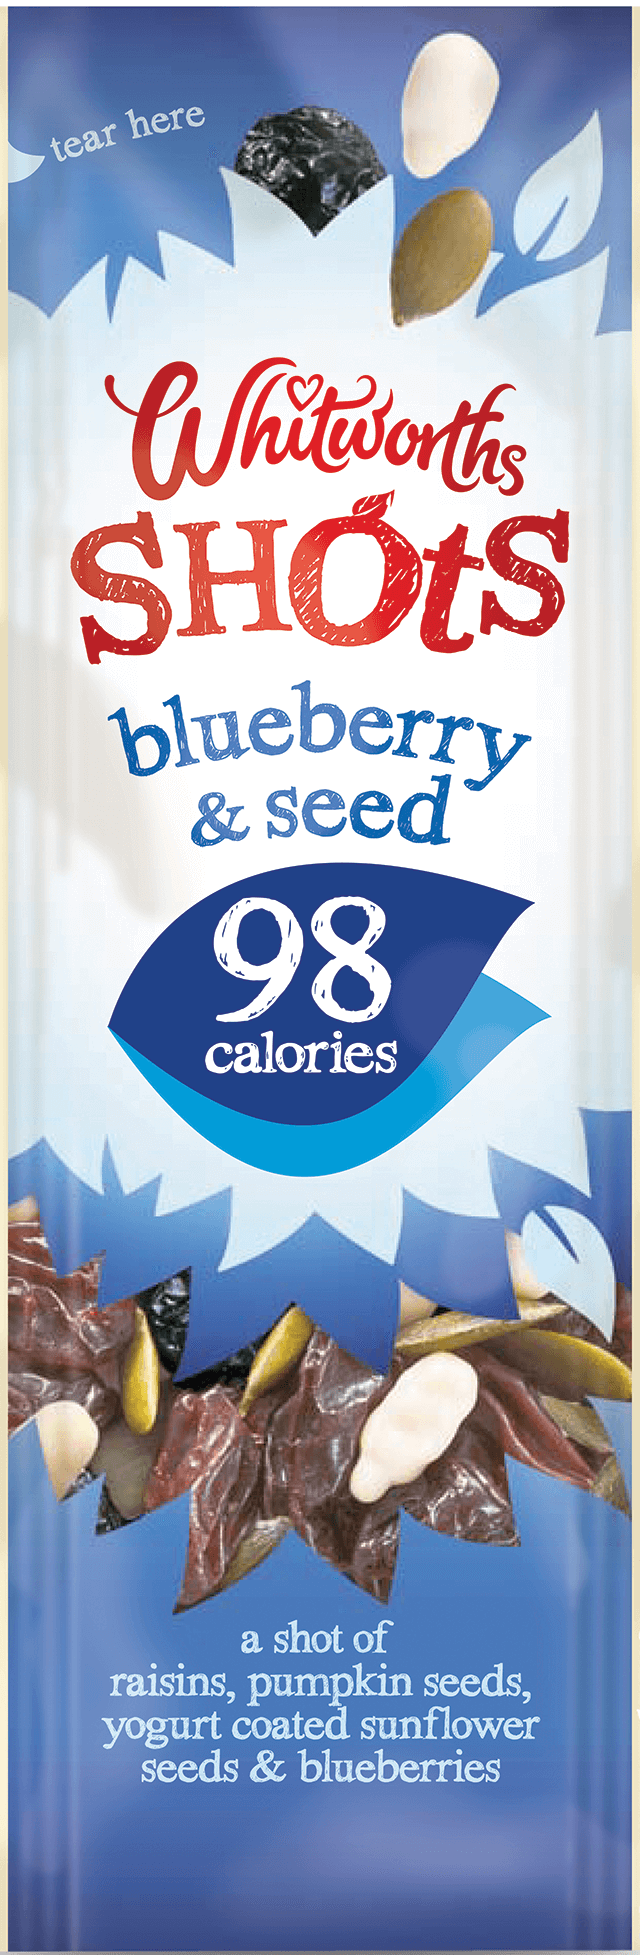 Whitworths Shots - Blueberry & Seed (98 calories)